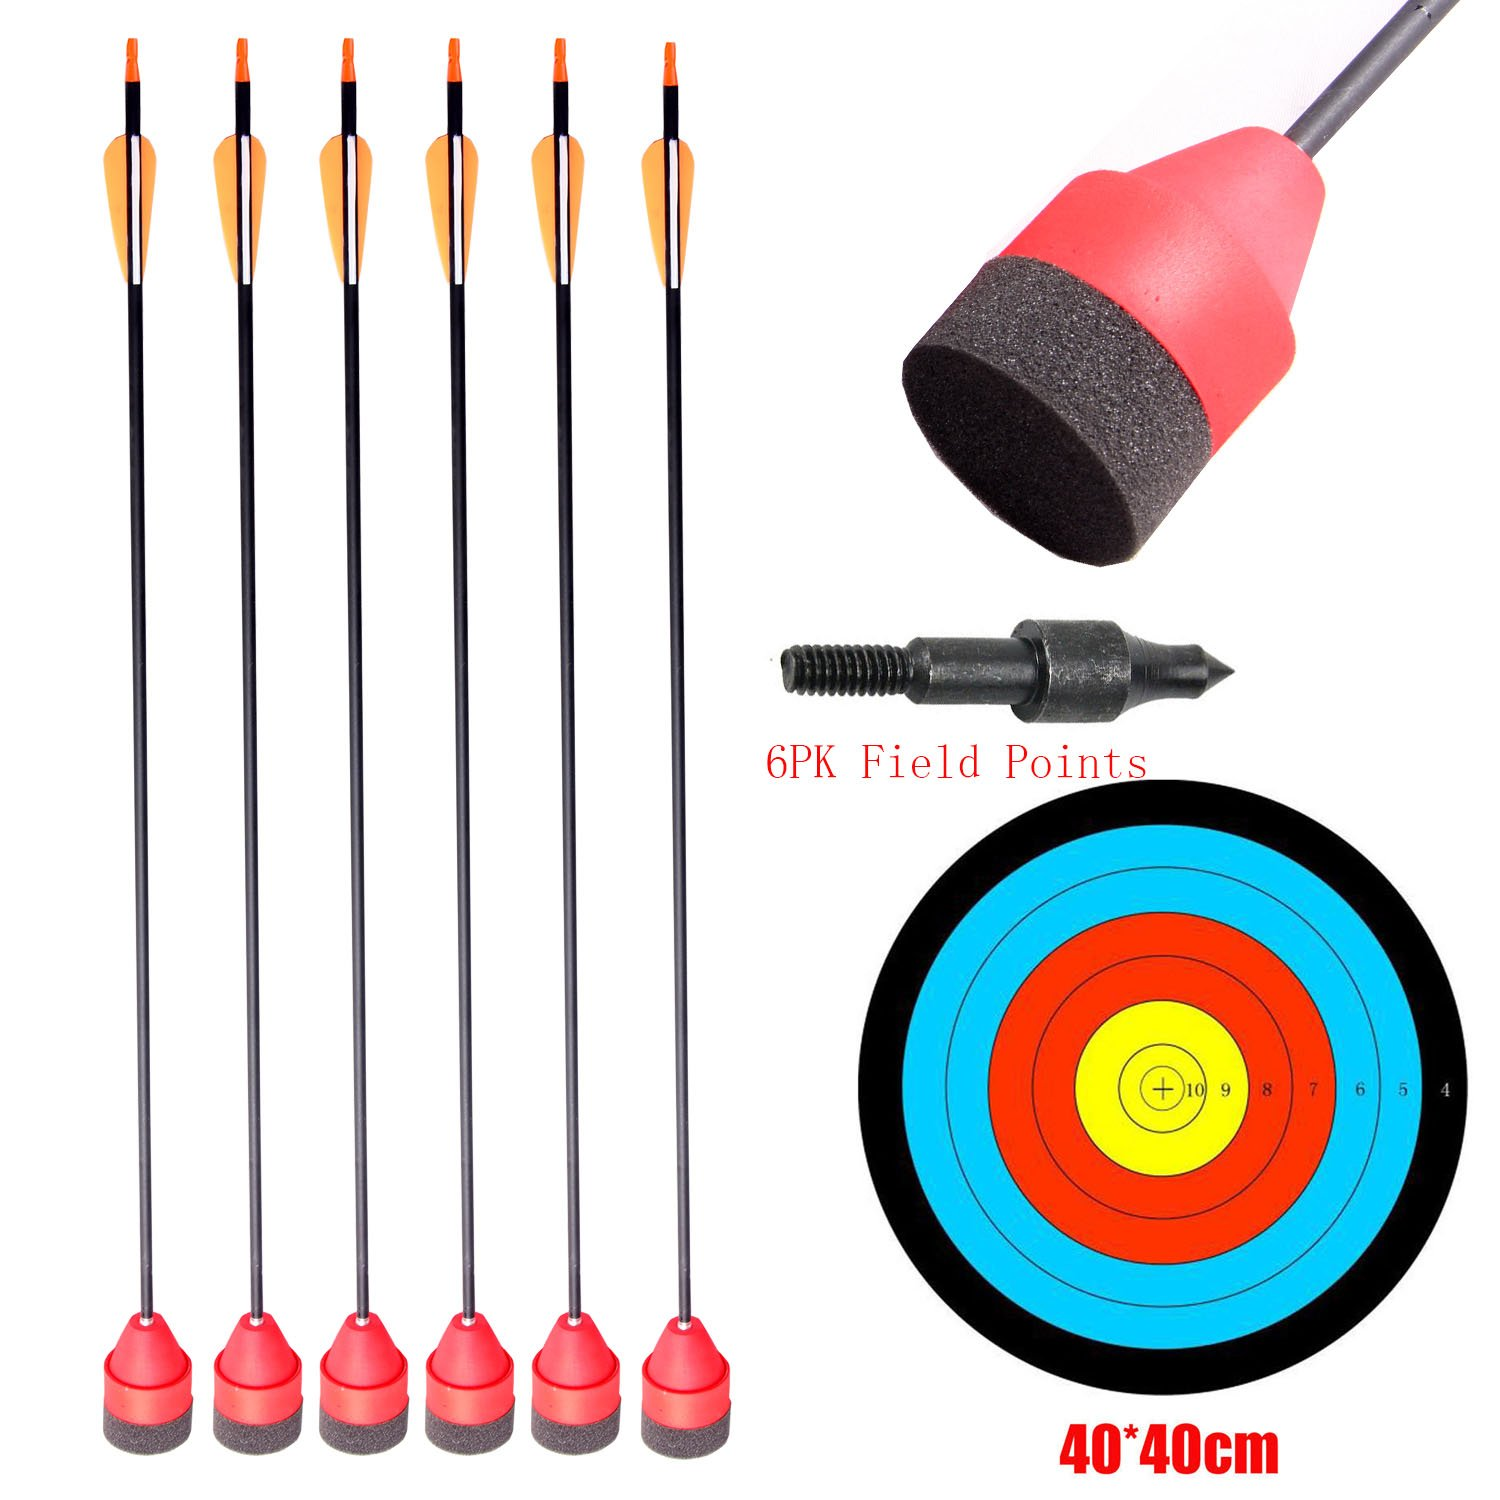 PG1ARCHERY Carbon Larp Arrows Foam Tips Broadhead Feather Fletched with Replaceable Screw-in Field Points and Arrow Target for Archery Practice CS Game Red